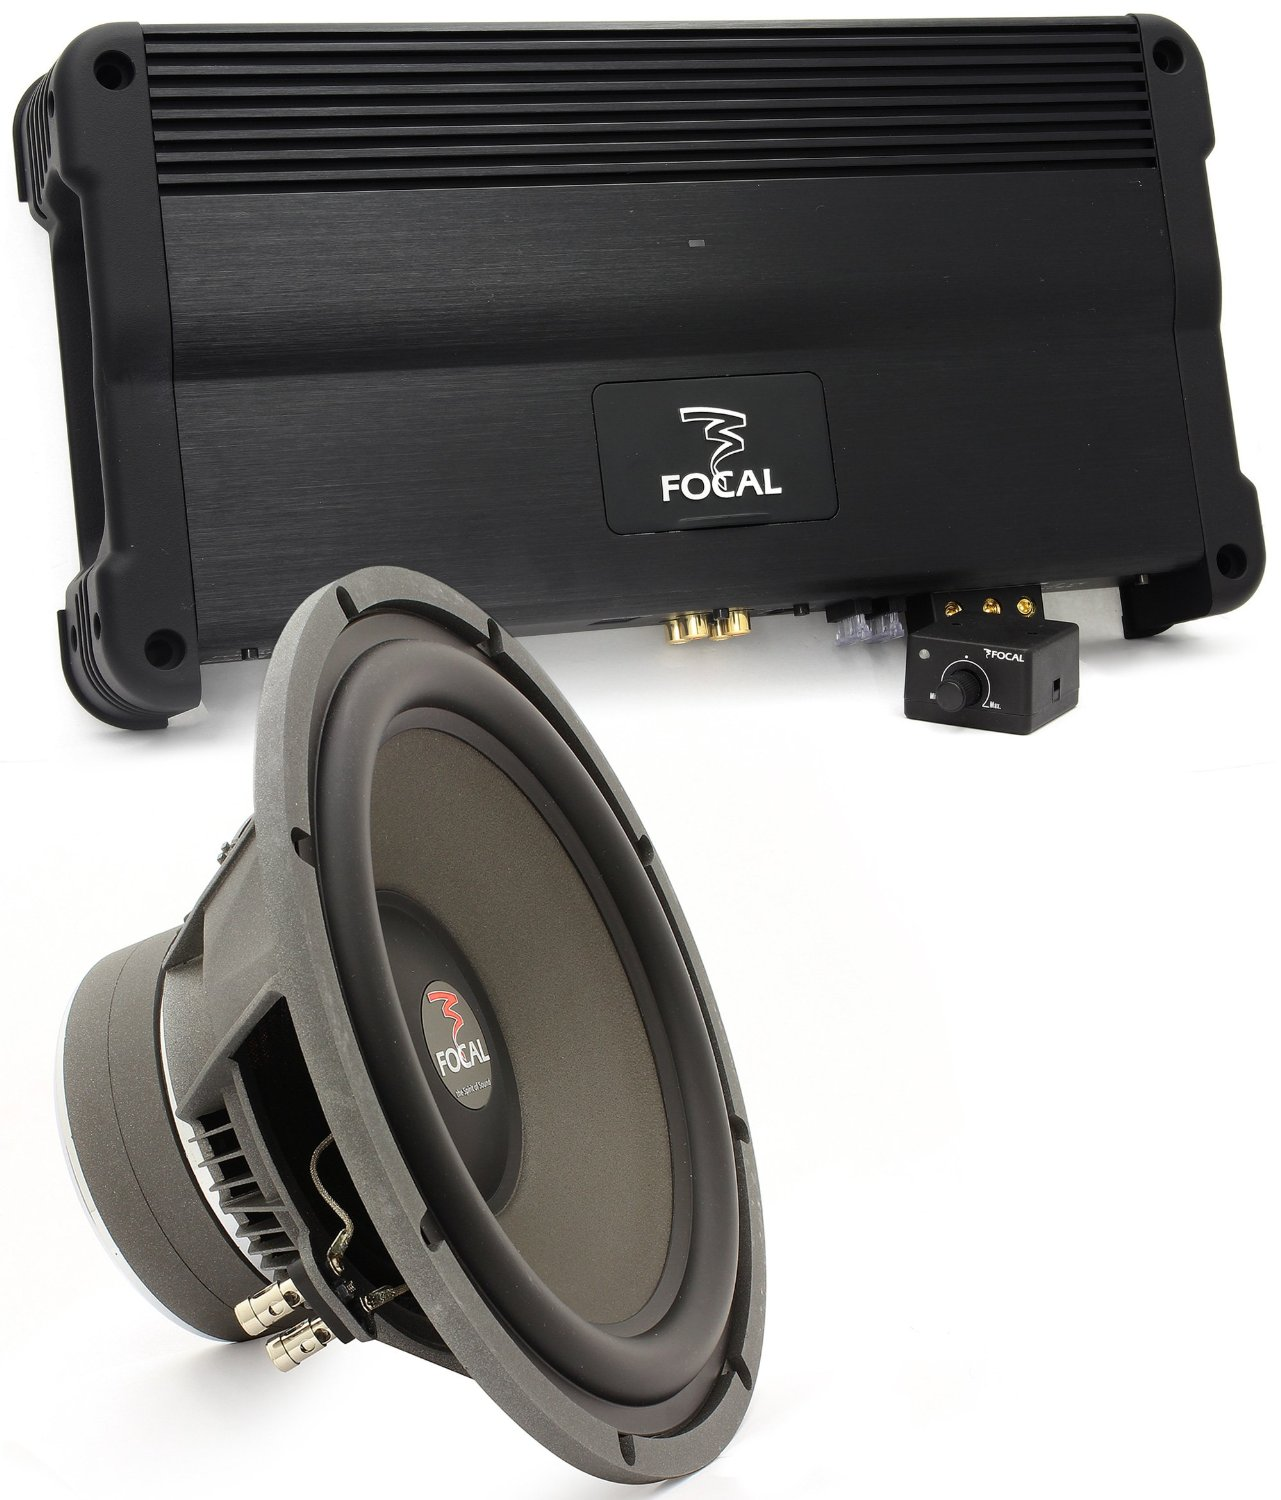 Cheap 1000 Rms Subwoofer, find 1000 Rms Subwoofer deals on